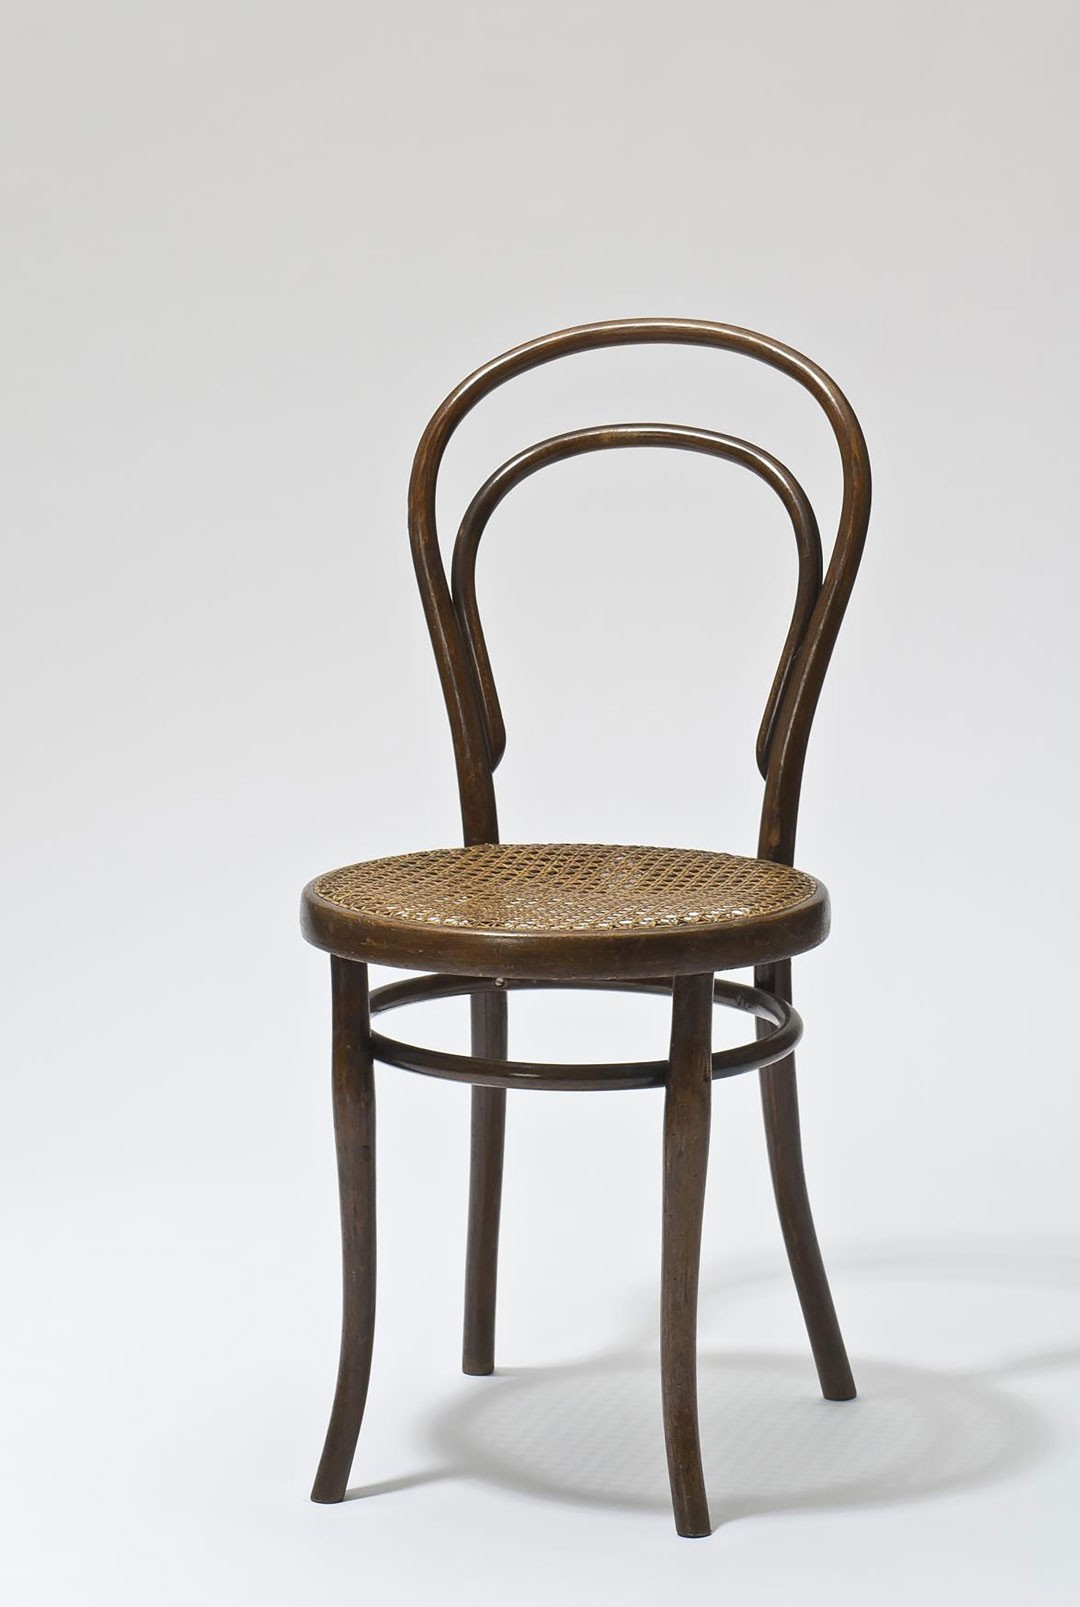 <BODY>Gebrüder Thonet, Chair, Model N0. 14, Vienna, 1859 (Execution: 1890–1918)<br />© MAK/Georg Mayer</BODY>